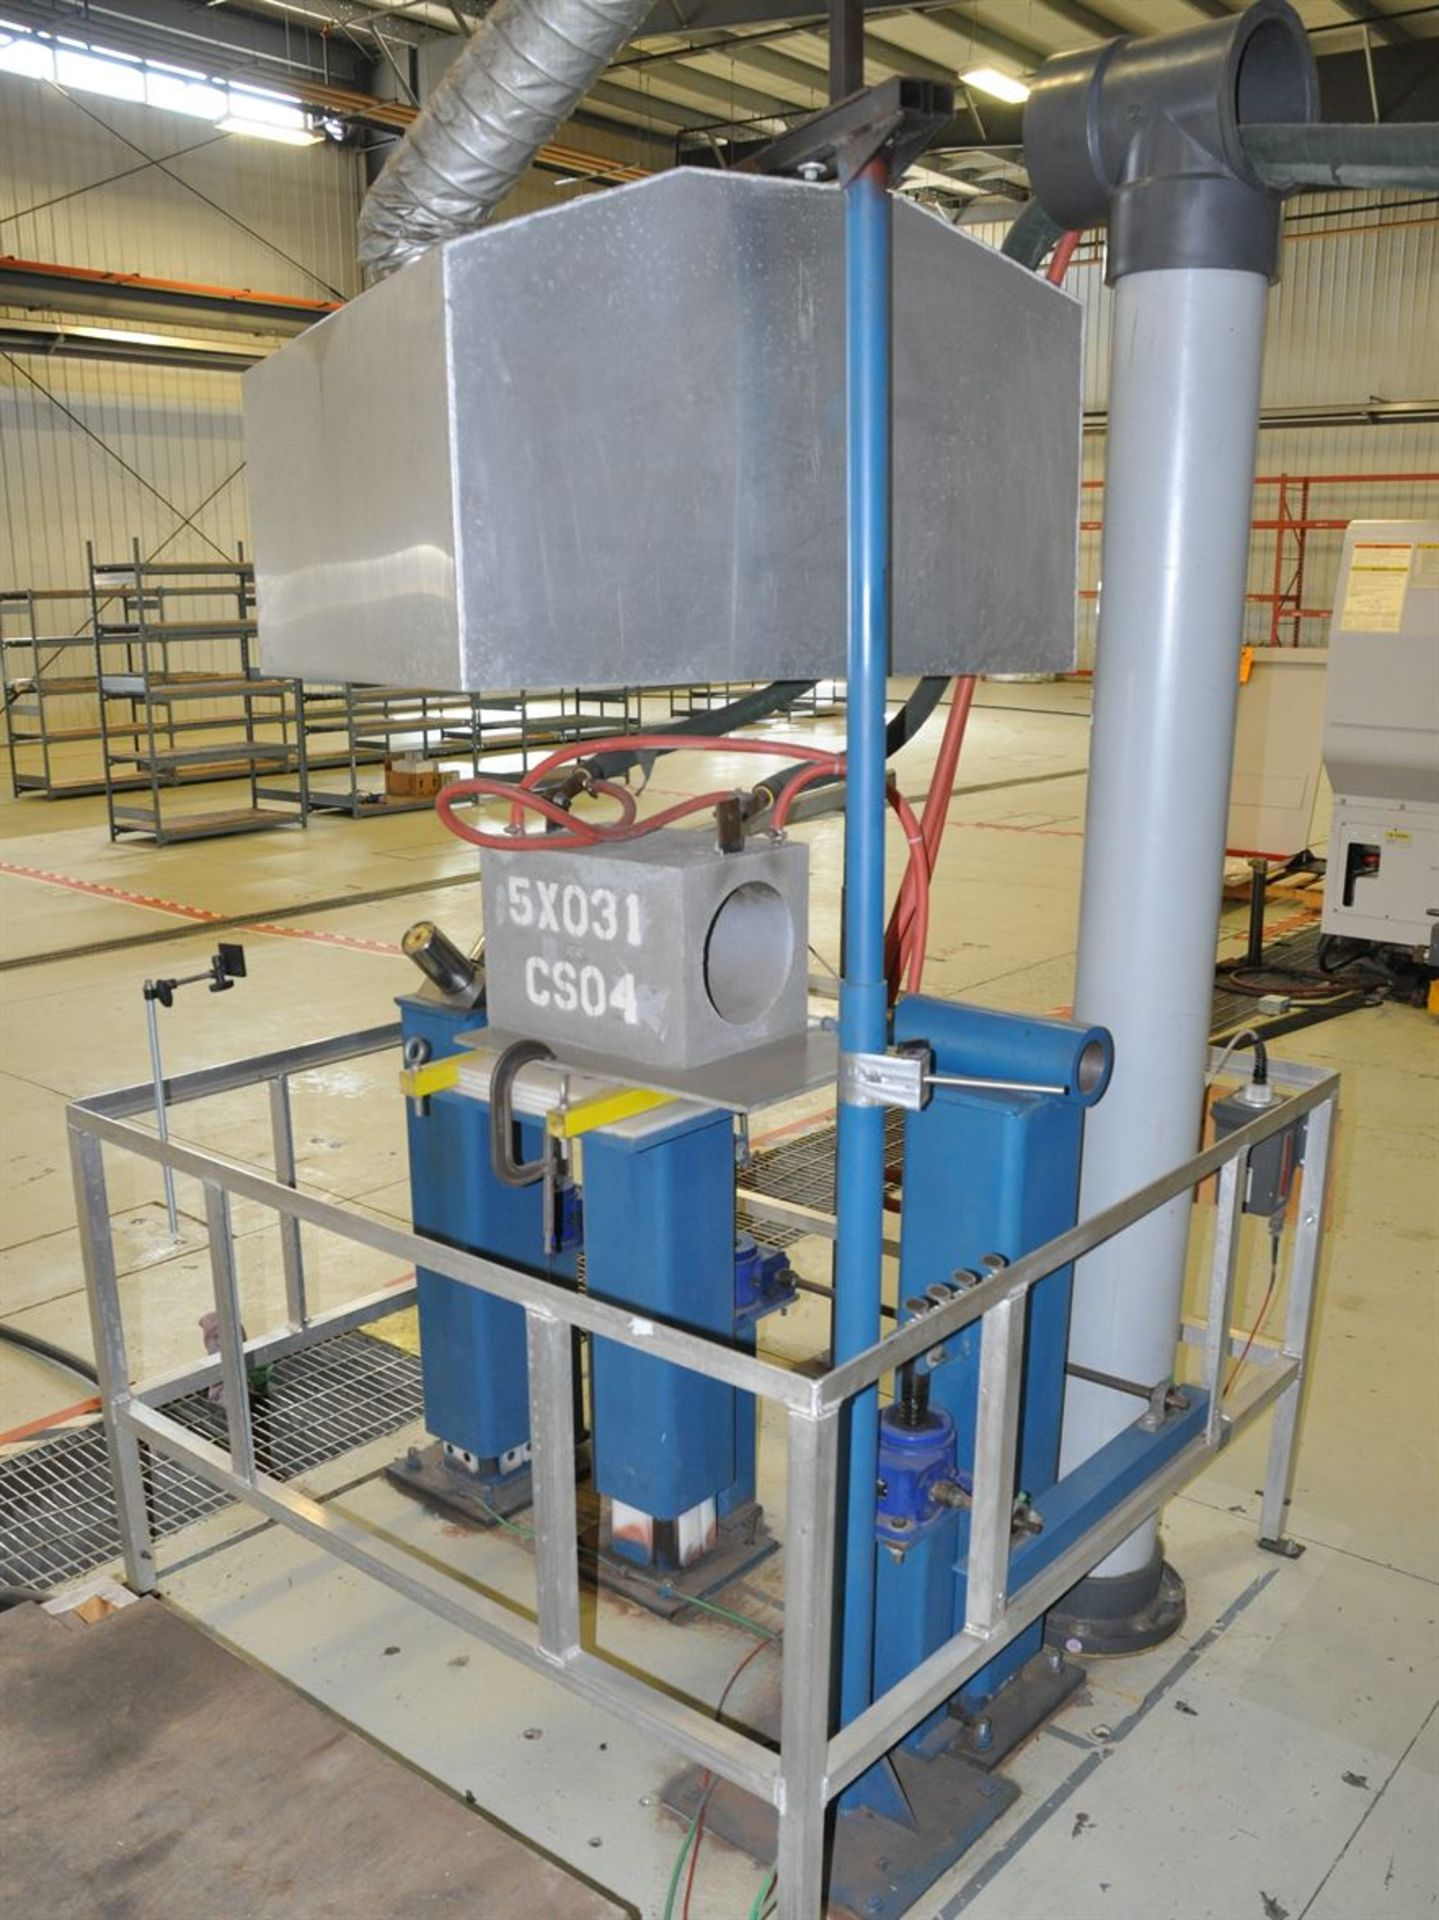 2012 BONE FRONTIER COMPANY CNC TS5L 75 3-10SUM Induction Power Stress Relieving Unit, s/n 730, w/ - Image 3 of 6